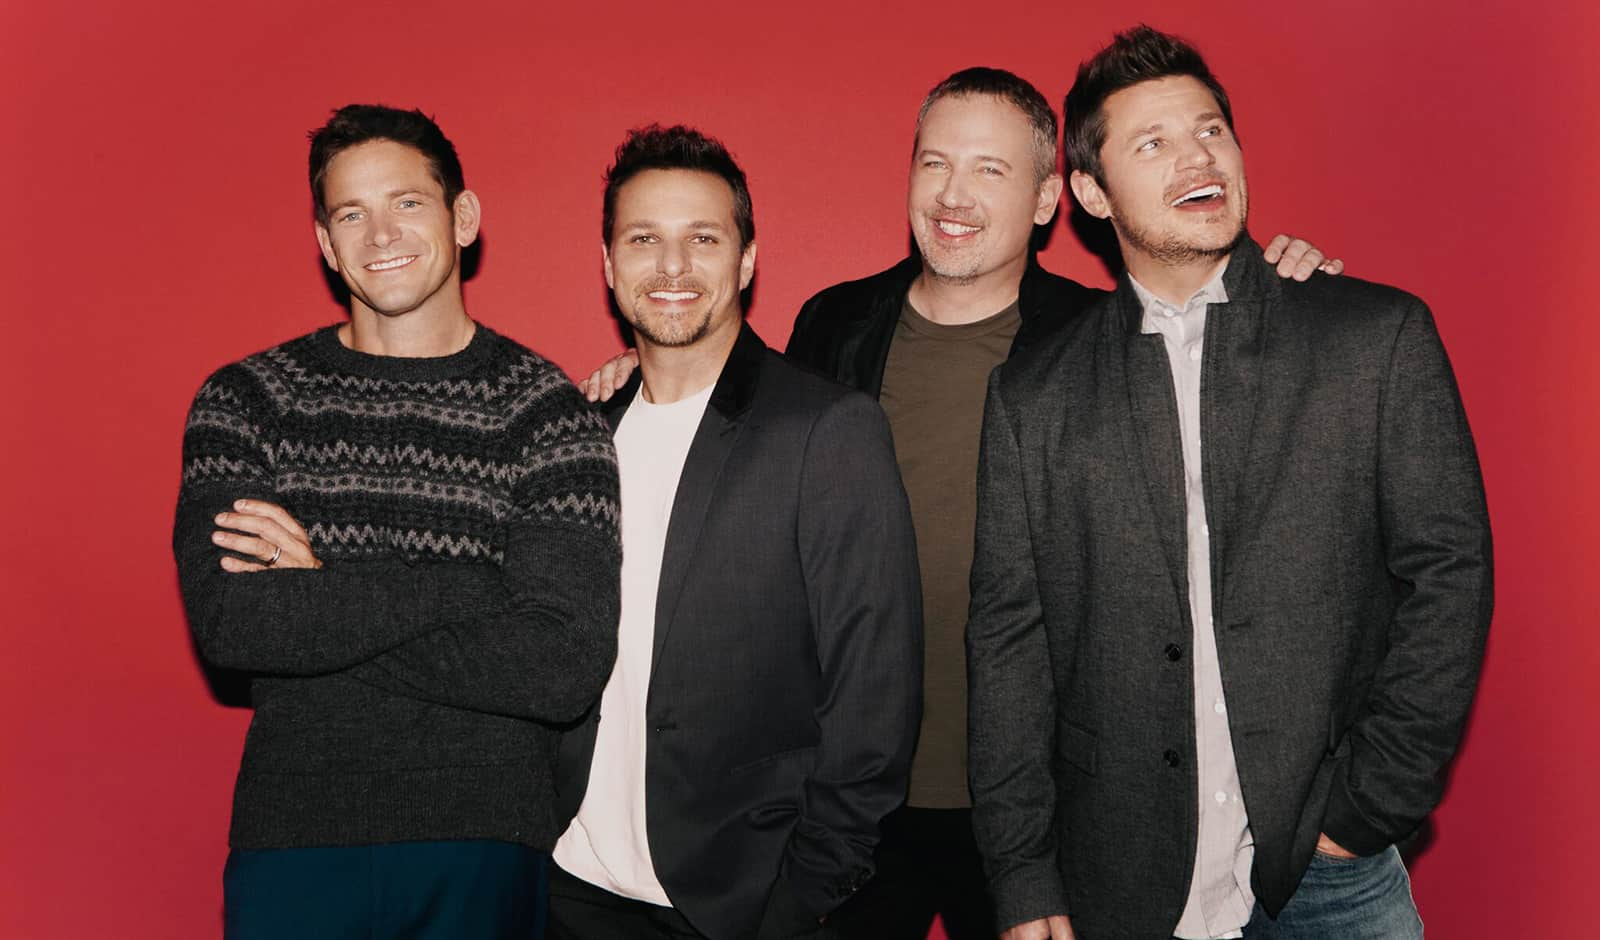 Jeff Timmons of 98 Degrees Talks All Things Christmas: Music, Touring, and Holiday Memories